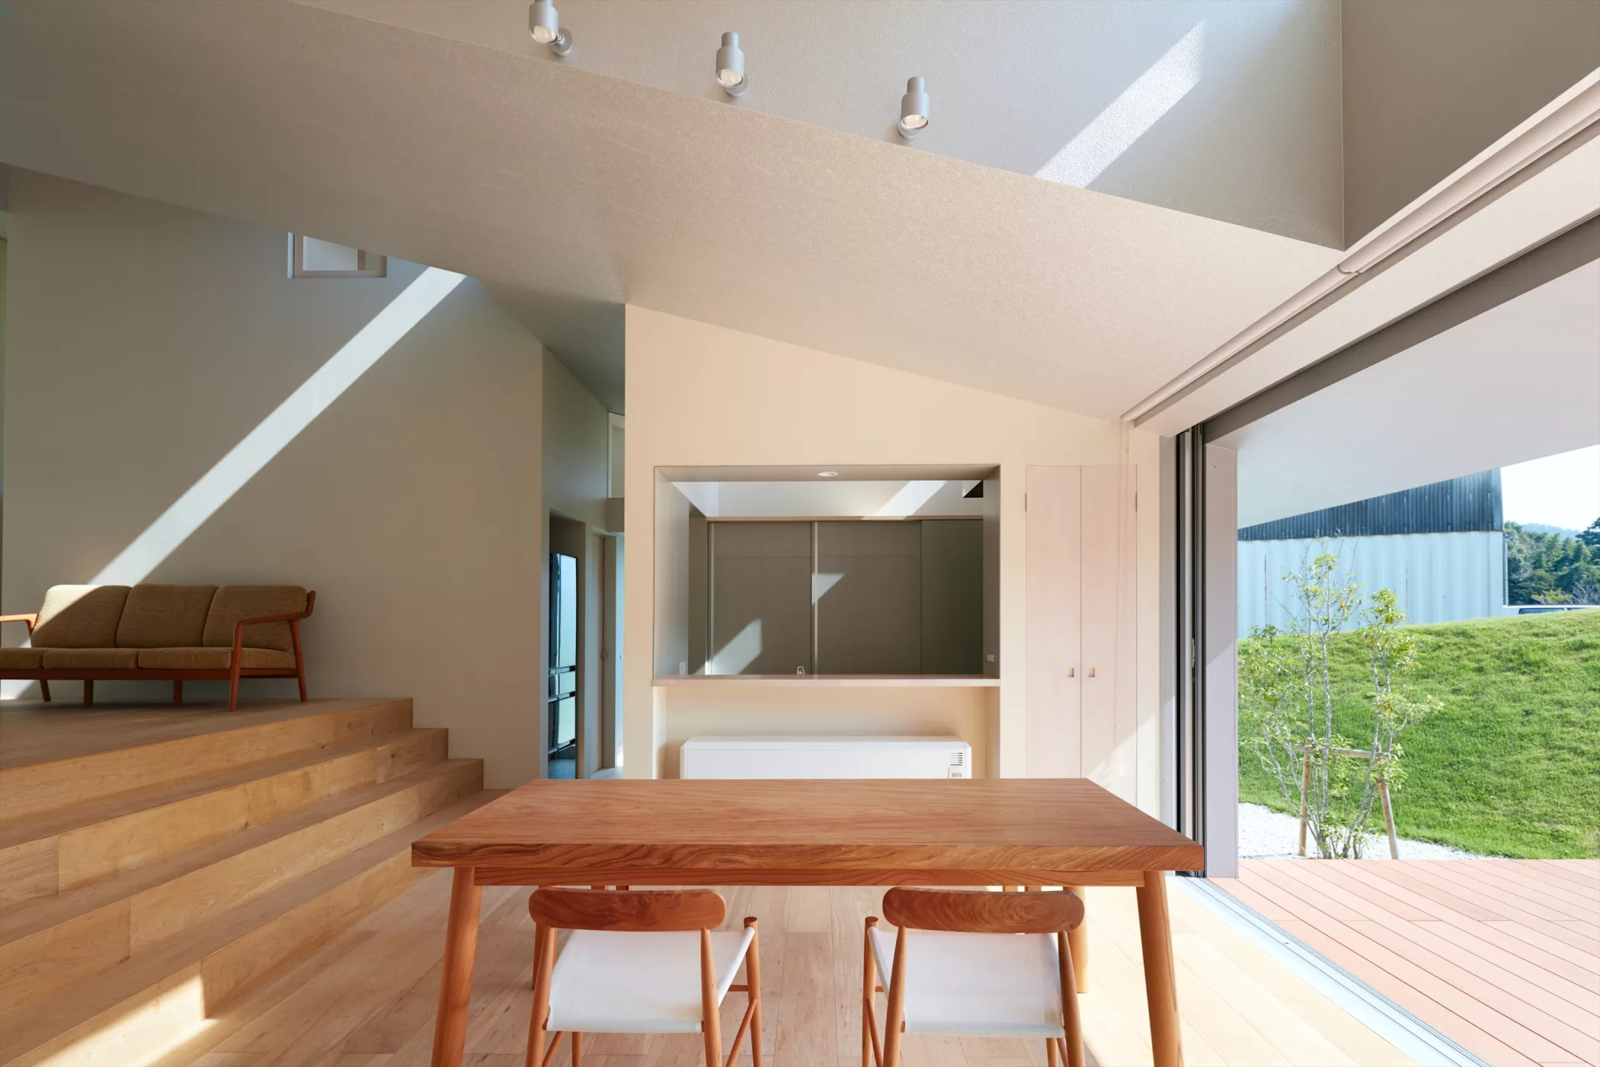 Photo 6 of 6 in House in Tokushima by Fujiwara-Muro Architects